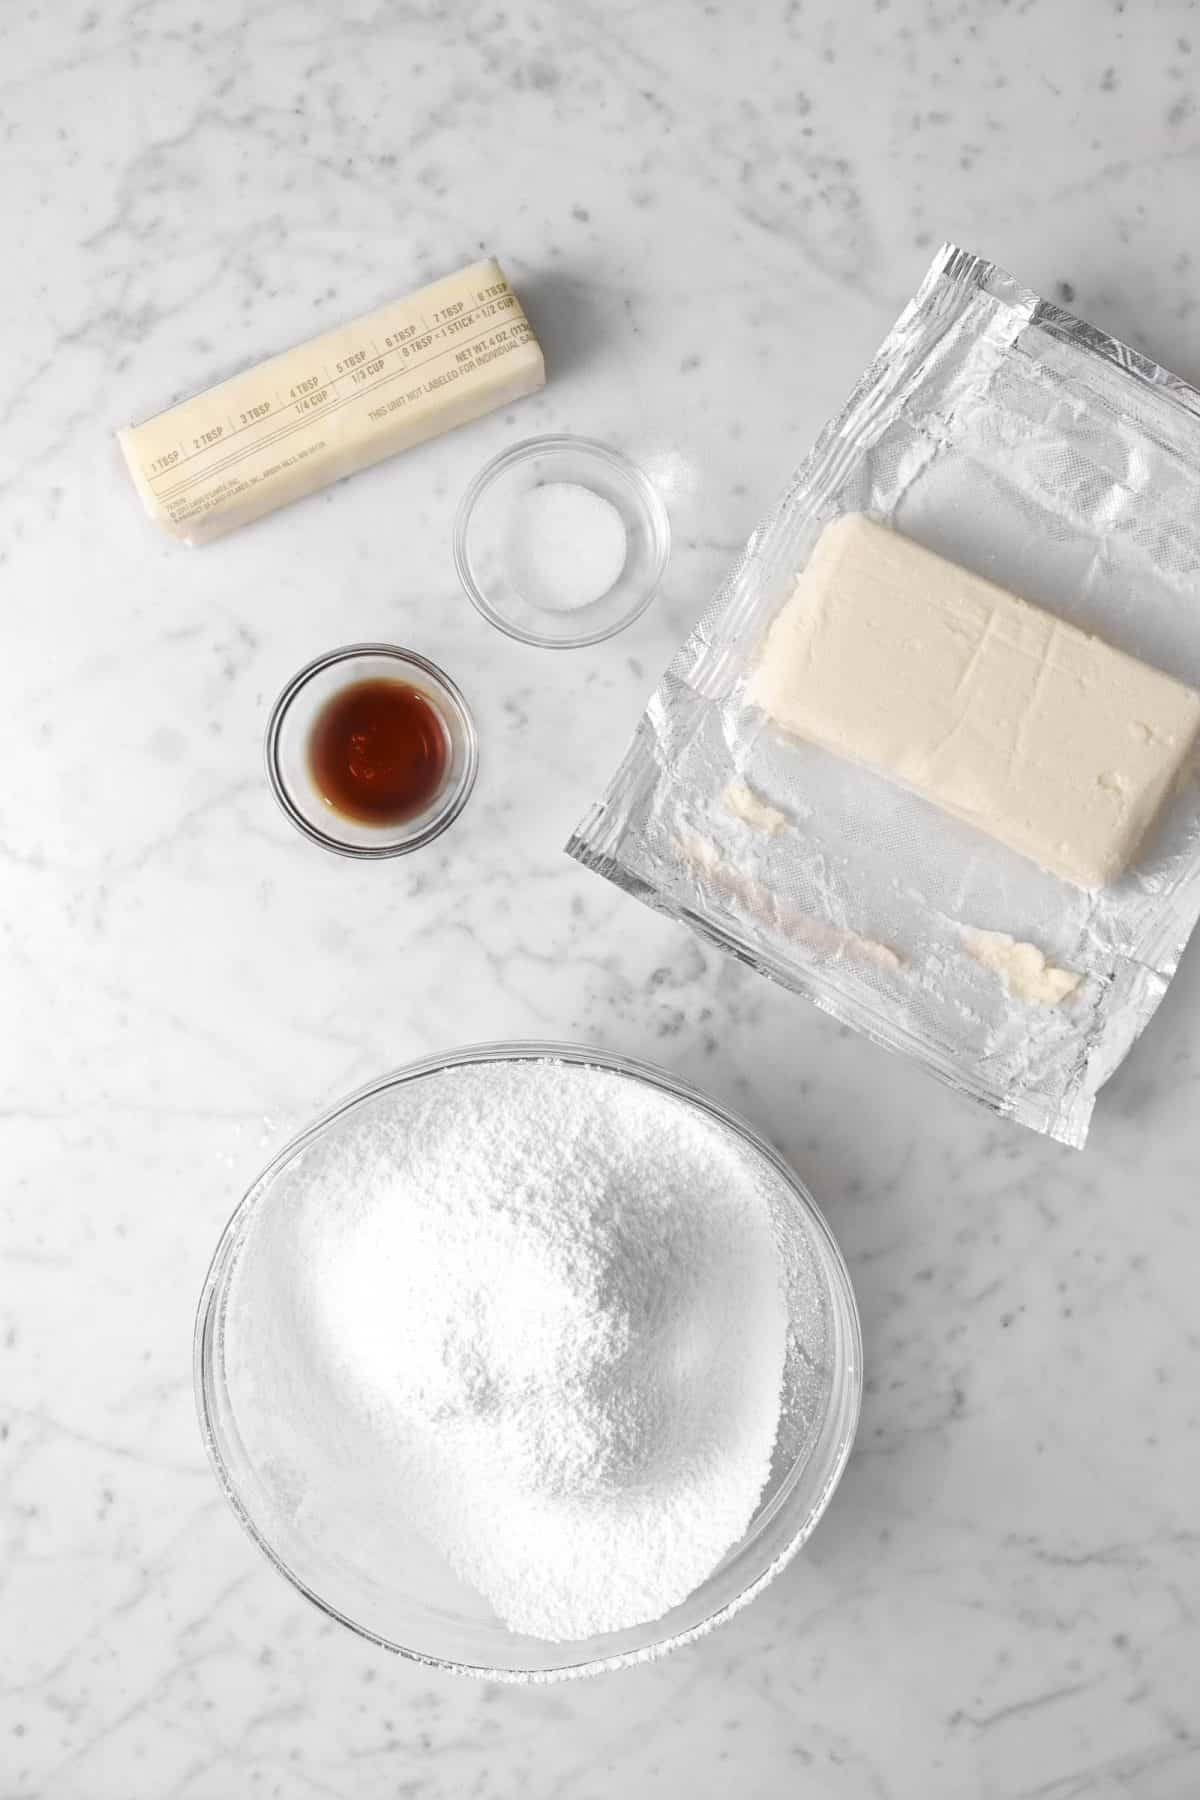 ingredients for cream cheese frosting on a marble counter